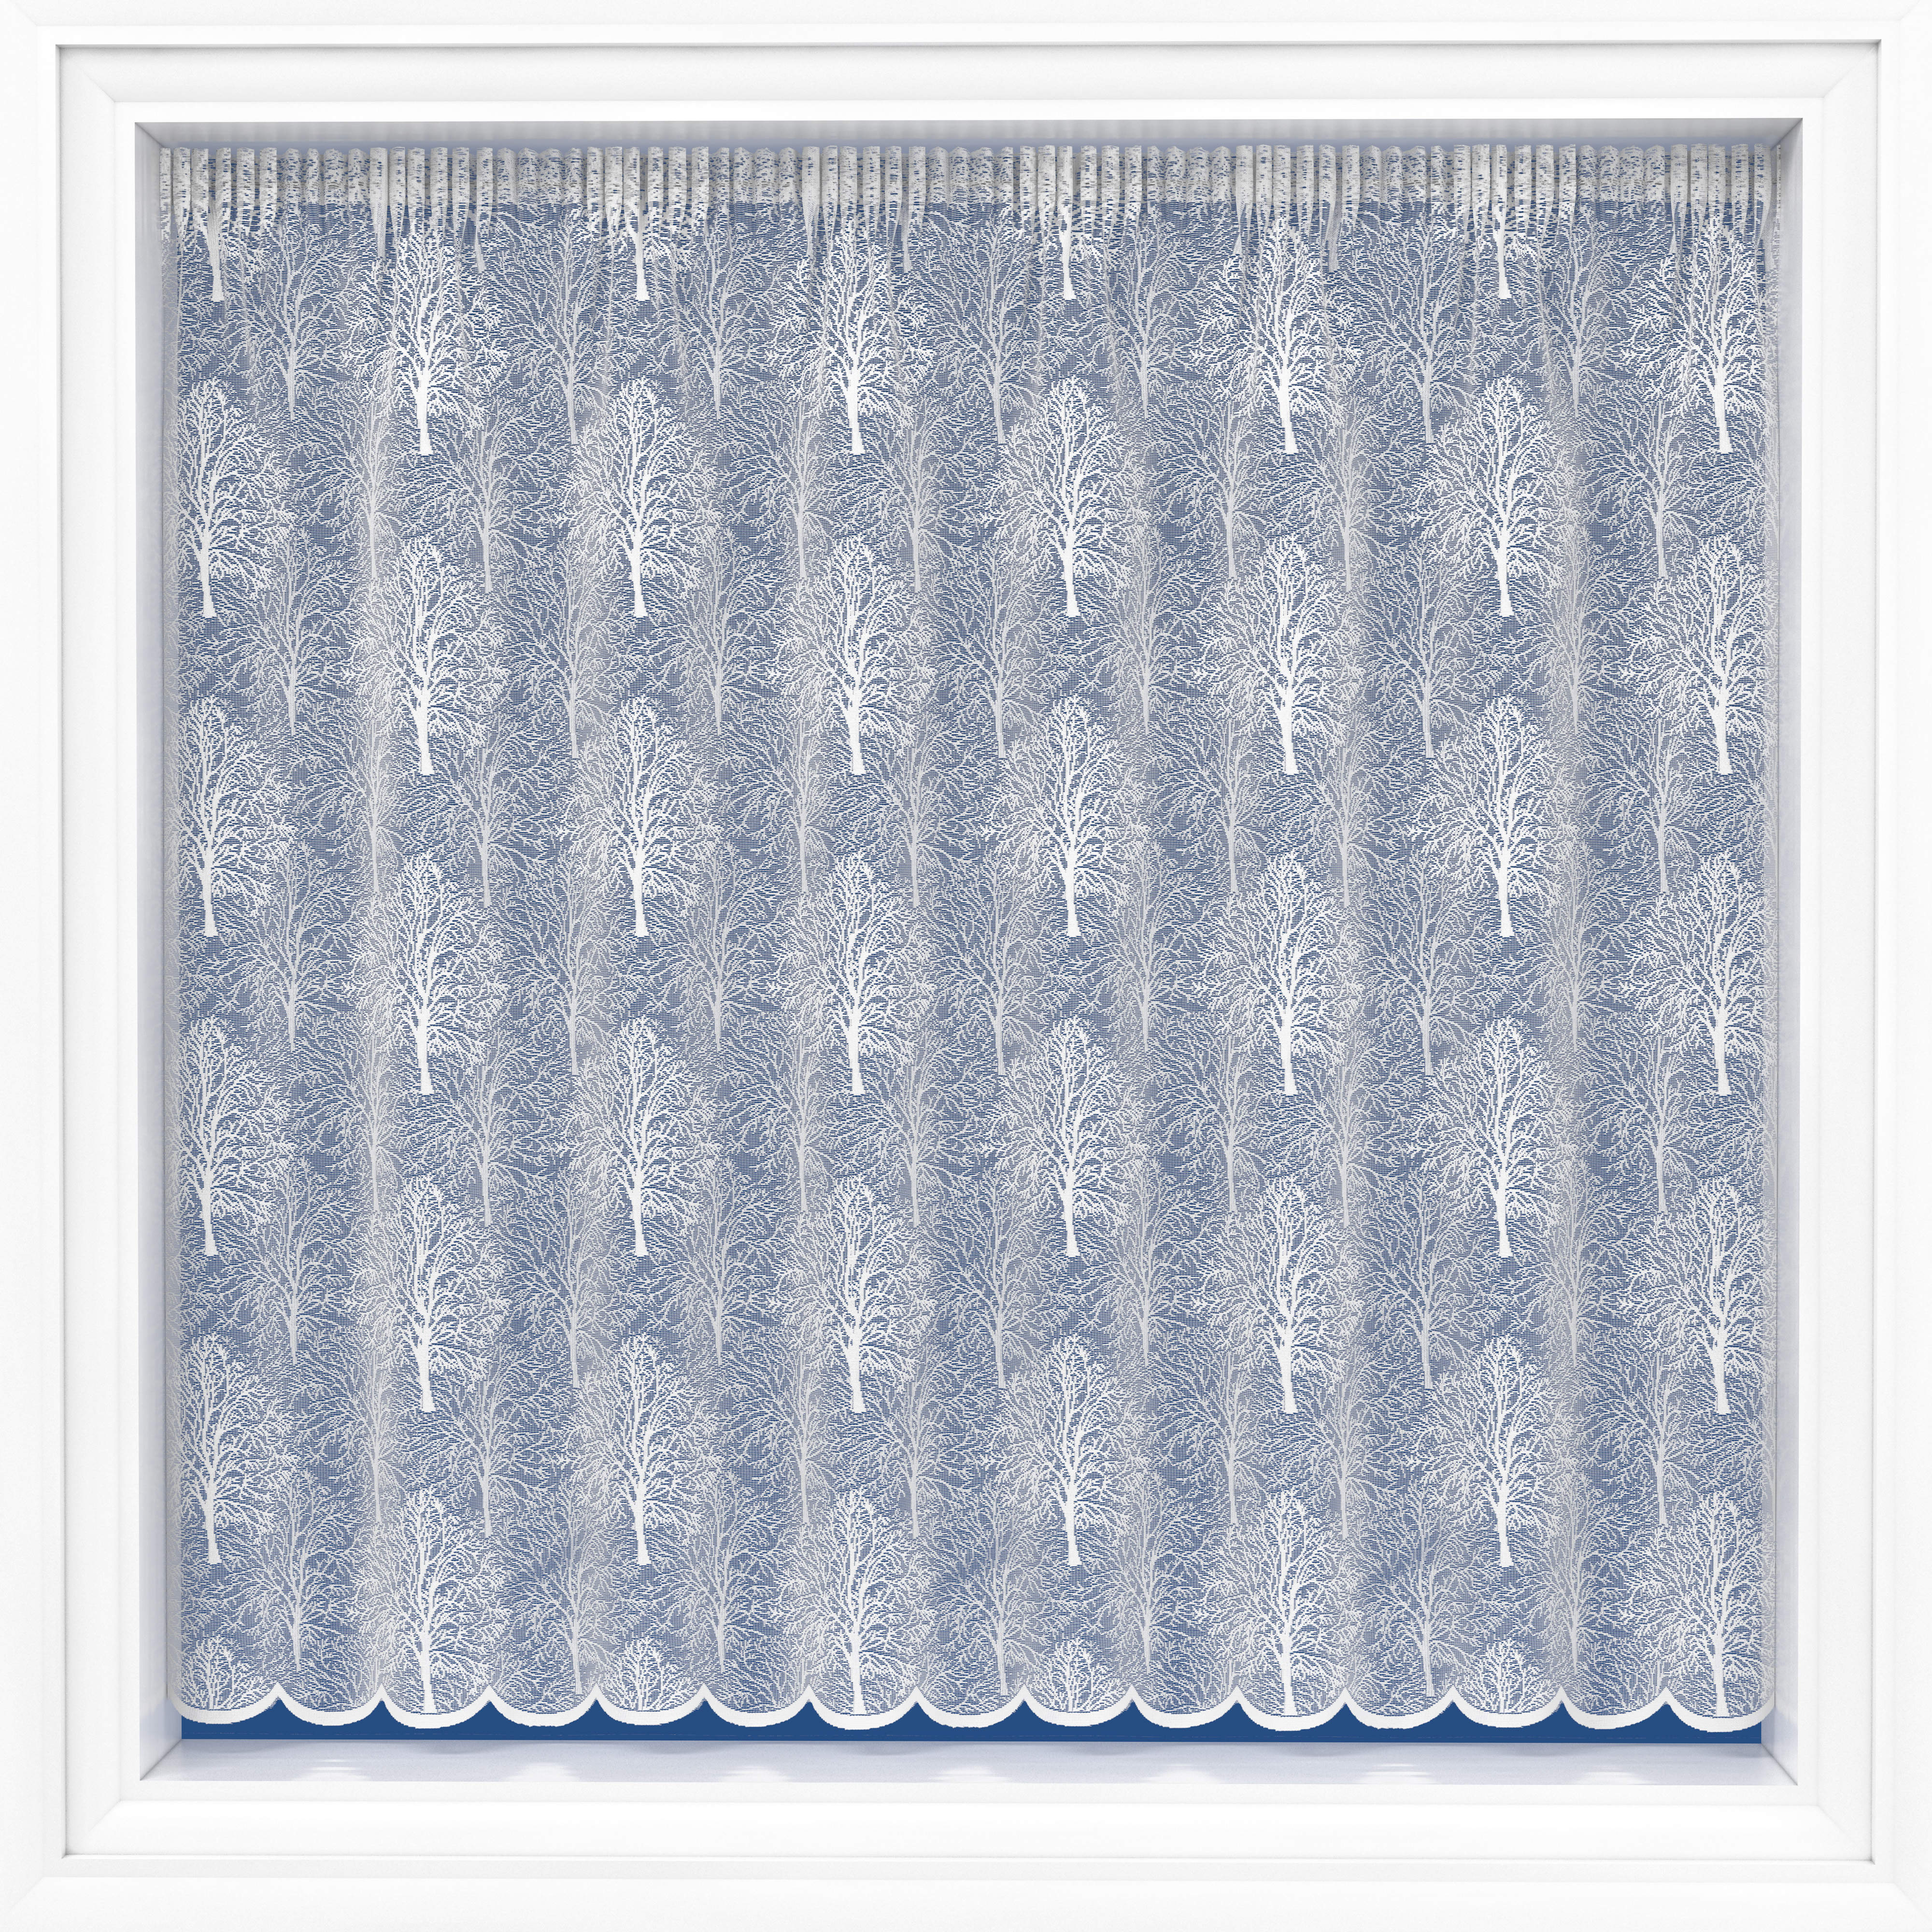 "BIRCH NET CURTAIN - 137cm (54"") length"